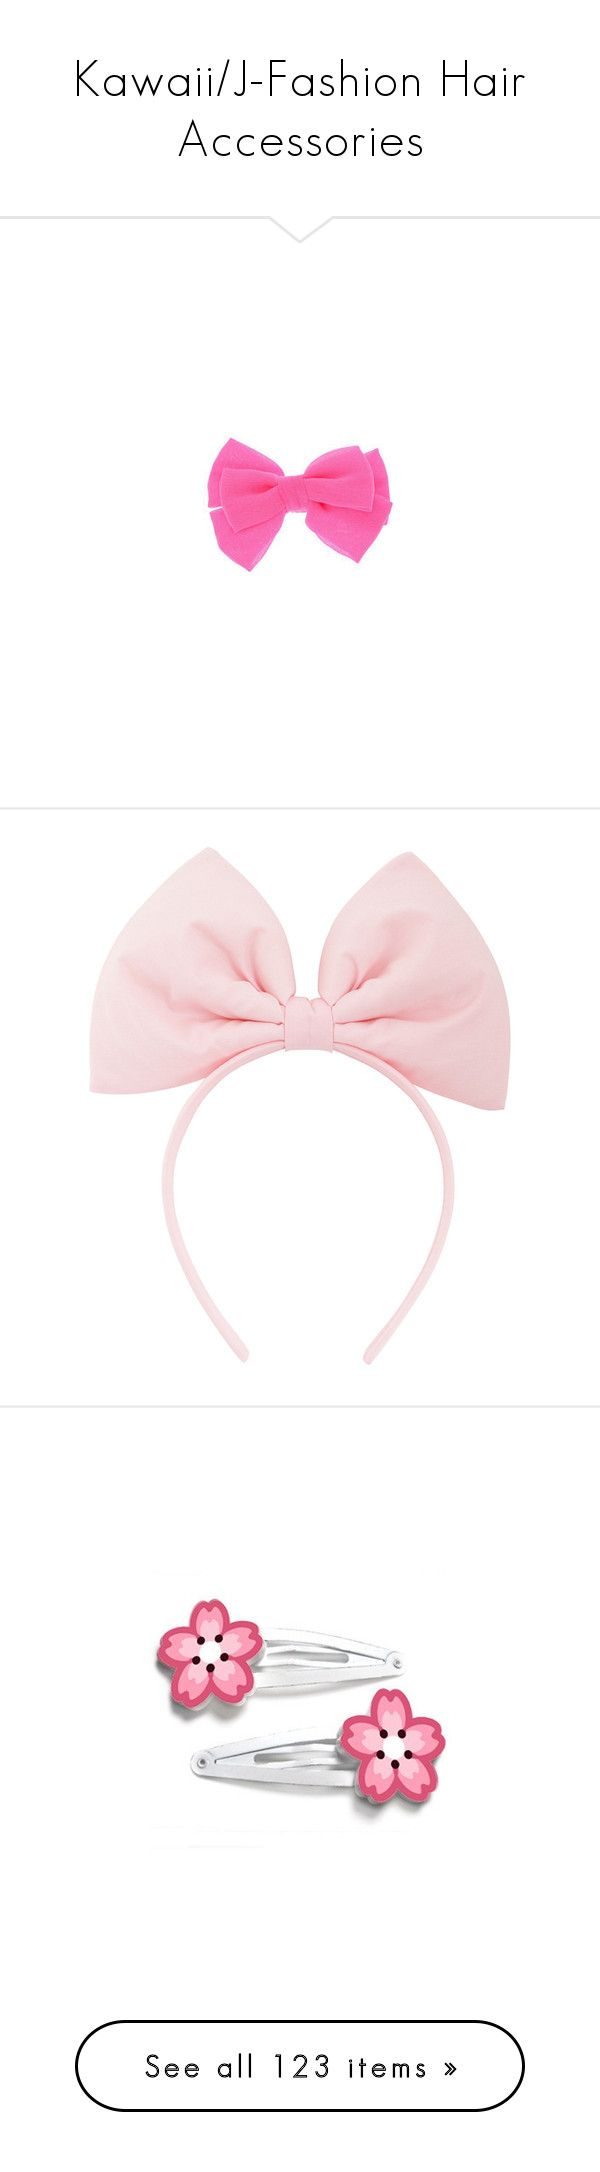 """""""Kawaii/J-Fashion Hair Accessories"""" by plancaiman ❤ liked on Polyvore featuring accessories, hair accessories, bow hair accessories, bow, headbands, bow hairband, hair band accessories, headband hair accessories, pink hair accessories and head wrap headbands"""